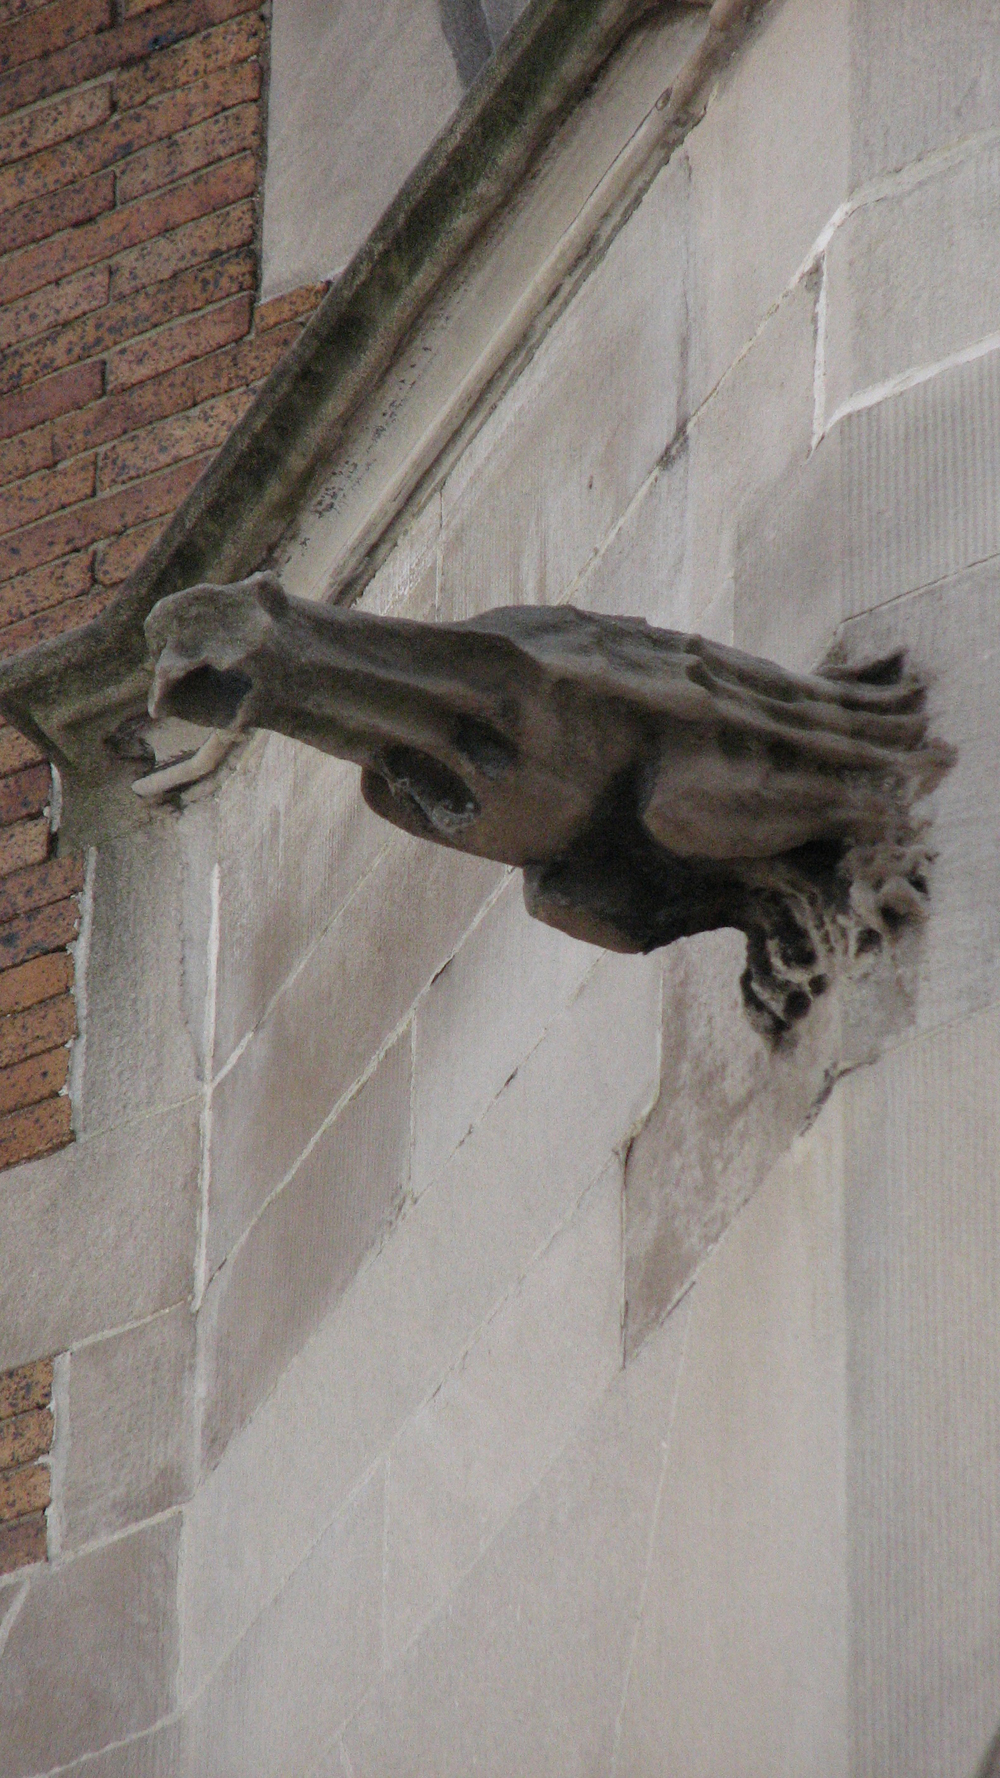 A French gargoyle leaps from the side of the house.